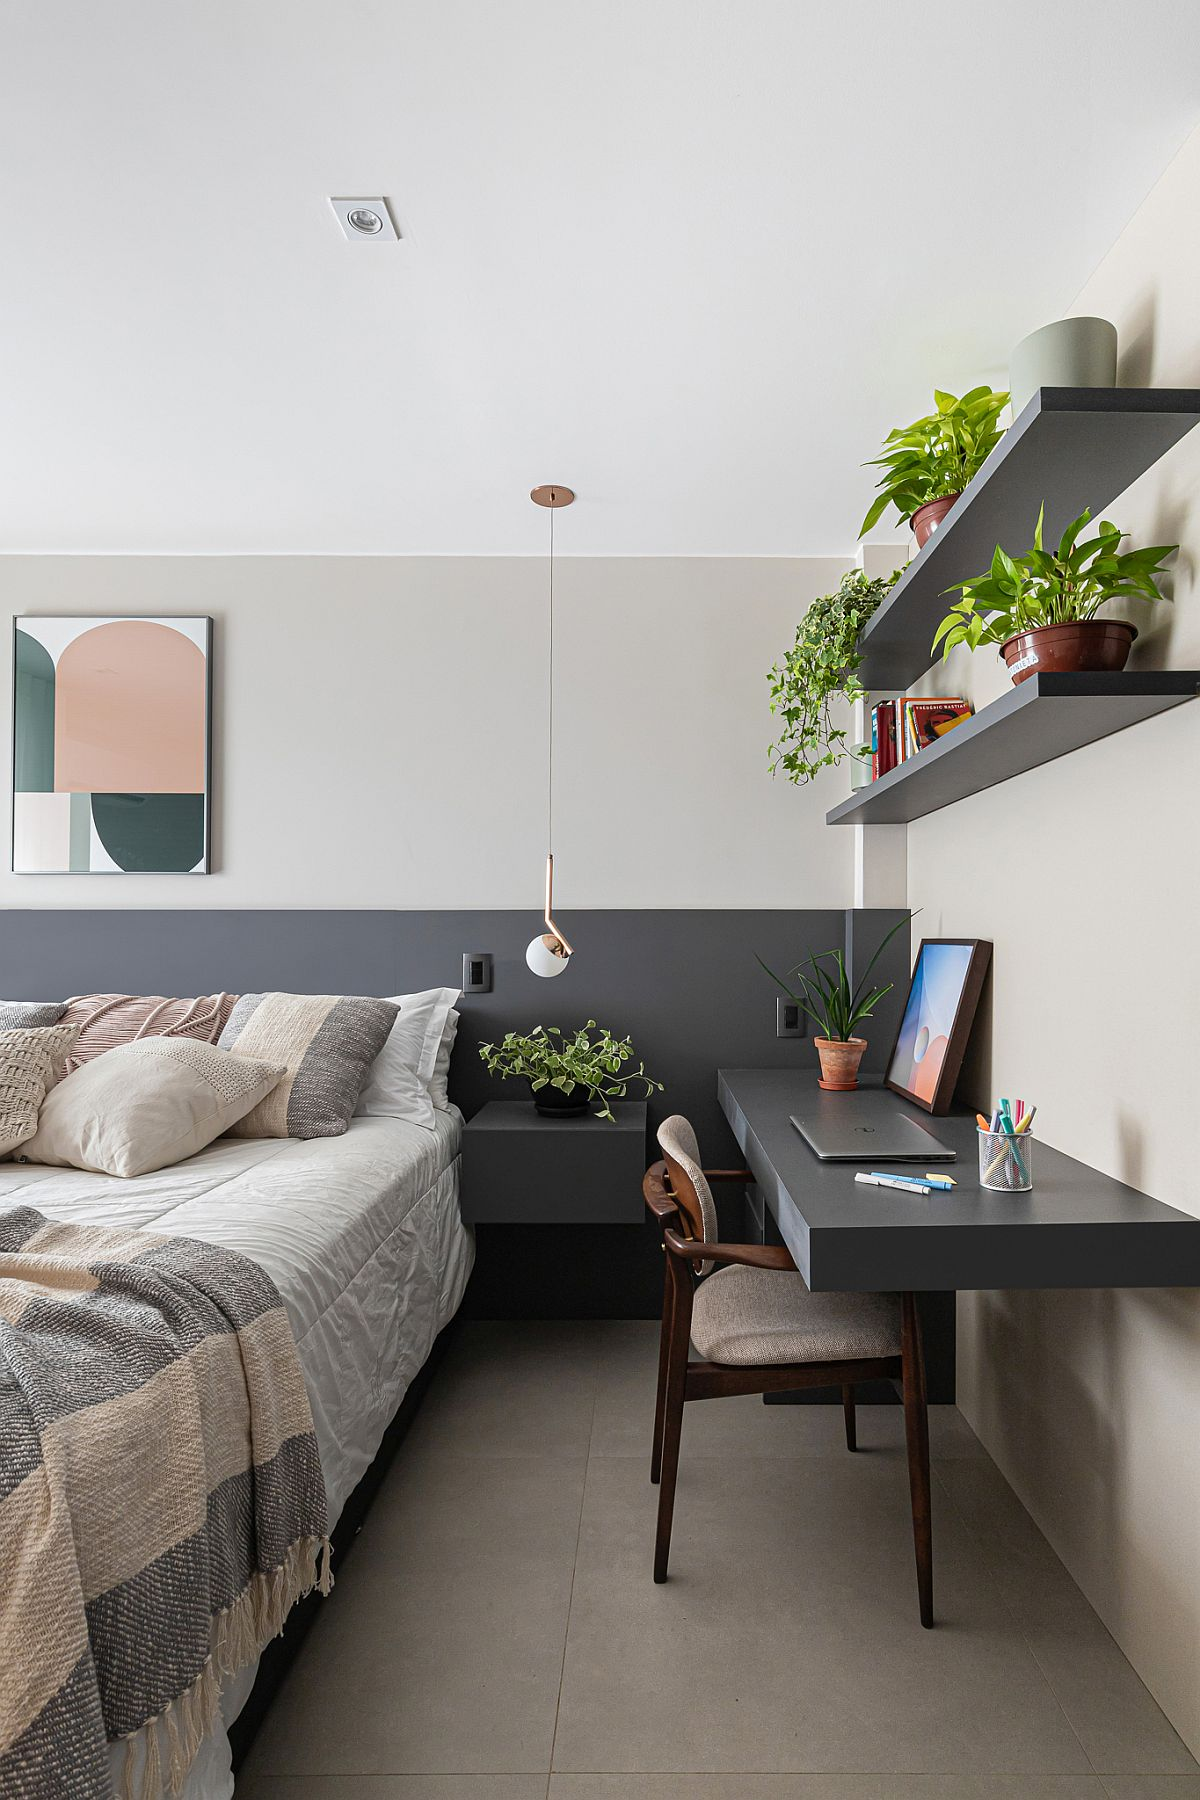 Gray half-wall coupled with gray workspace and slim floating shelves in the small bedroom